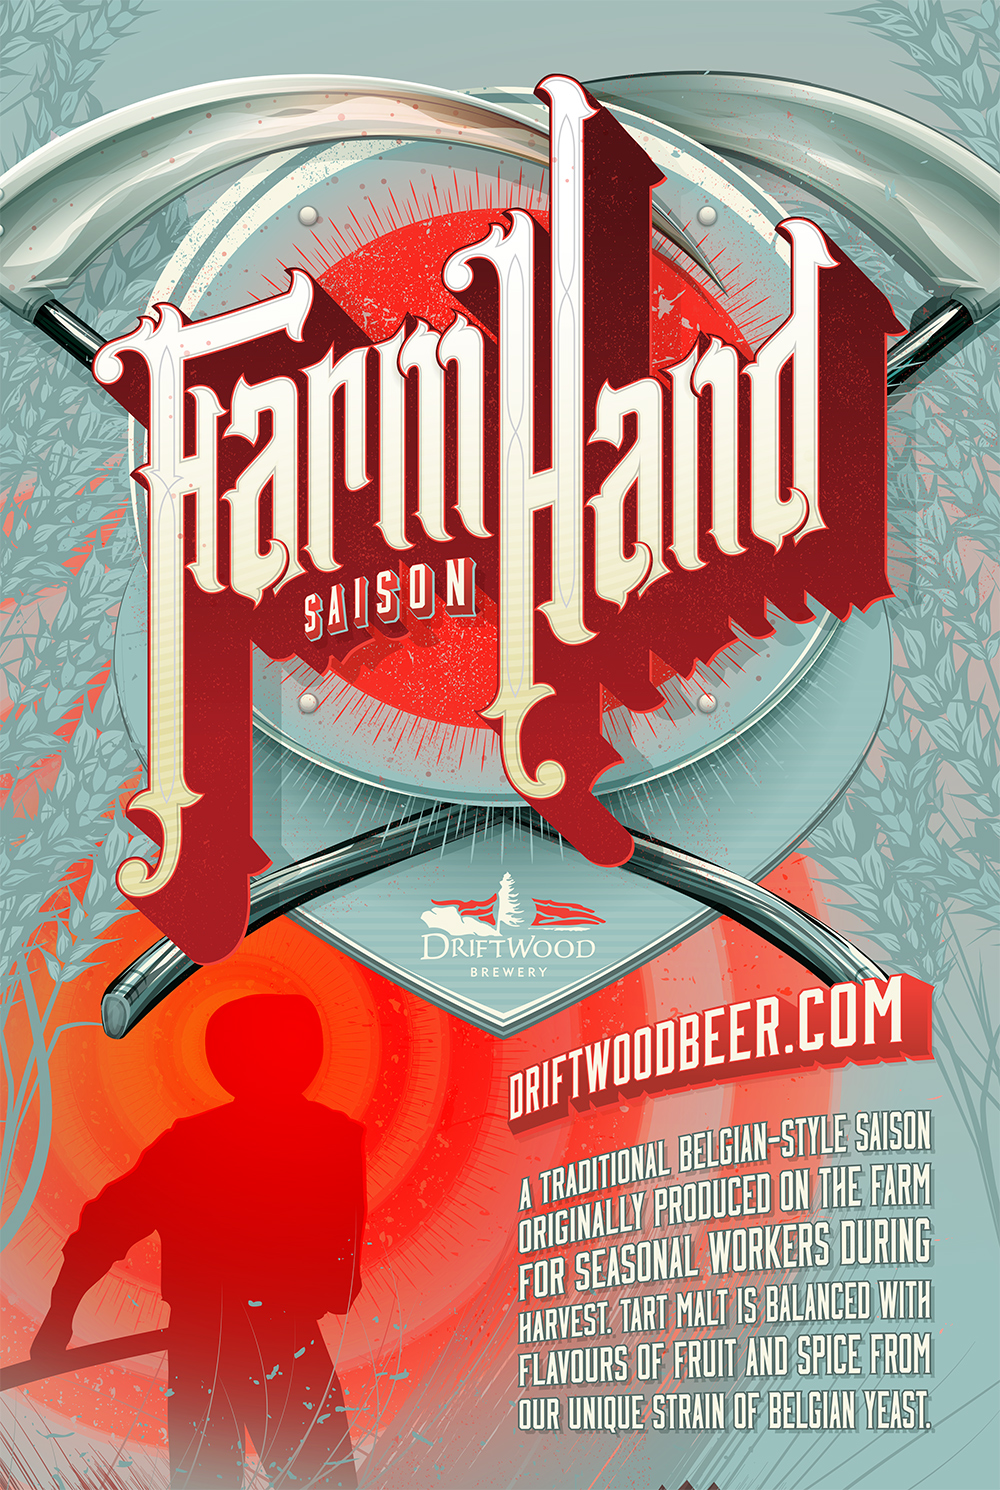 Poster Design for Driftwood Brewery's Farmhand Saison